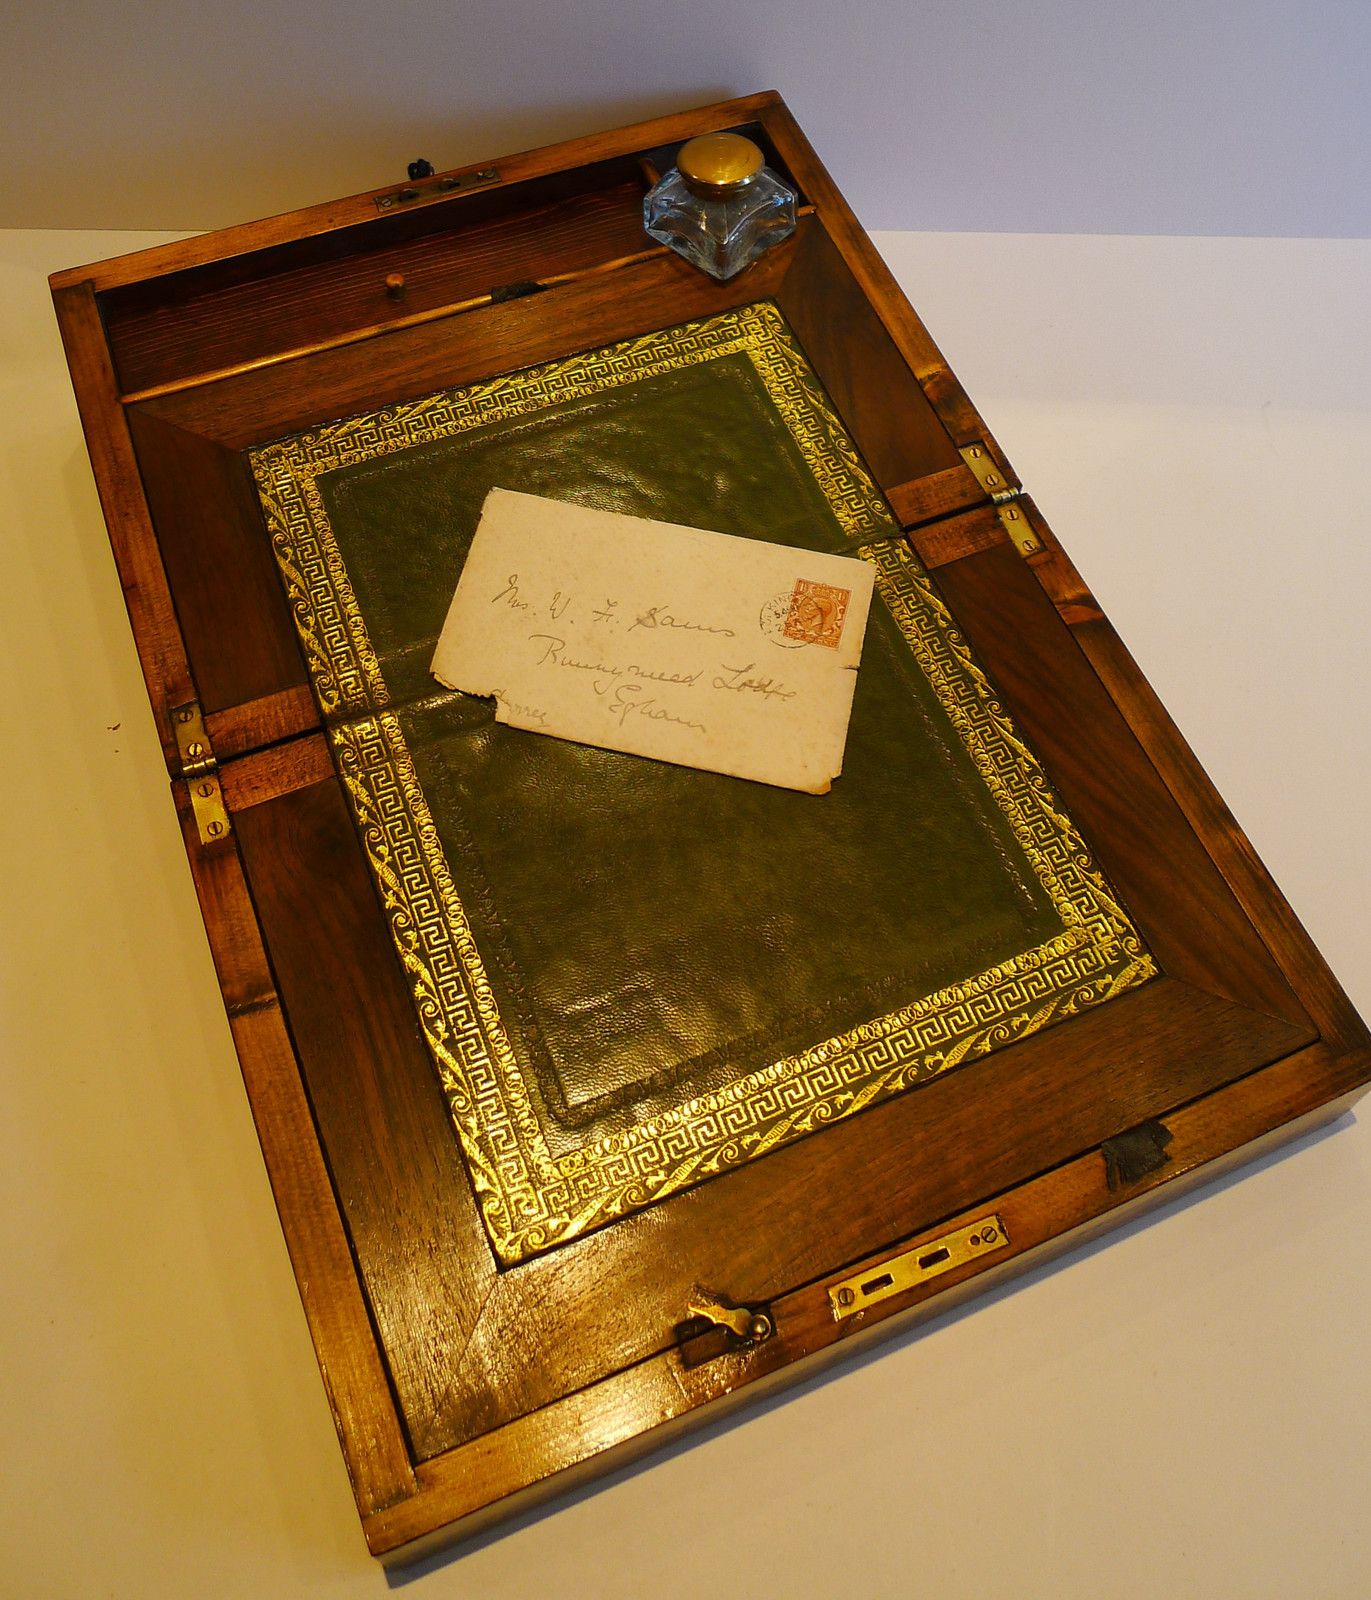 Antique wood lap desk, like Jane Austen used. A must have. - Antique Wood Lap Desk, Like Jane Austen Used. A Must Have